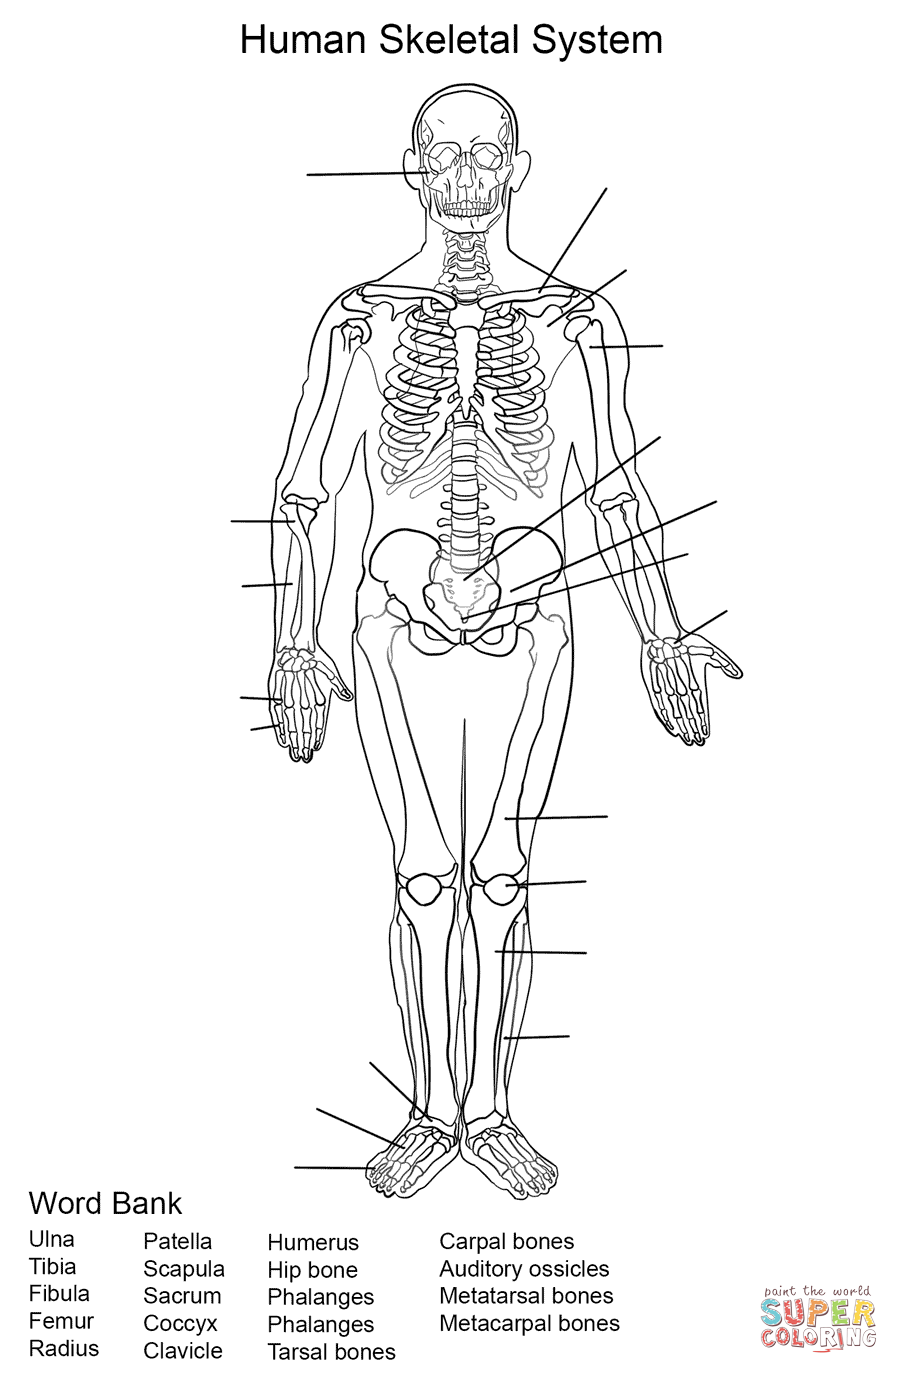 Worksheets Human Skeleton Worksheet image result for human skeletal system anatomy pinterest worksheet coloring page from category